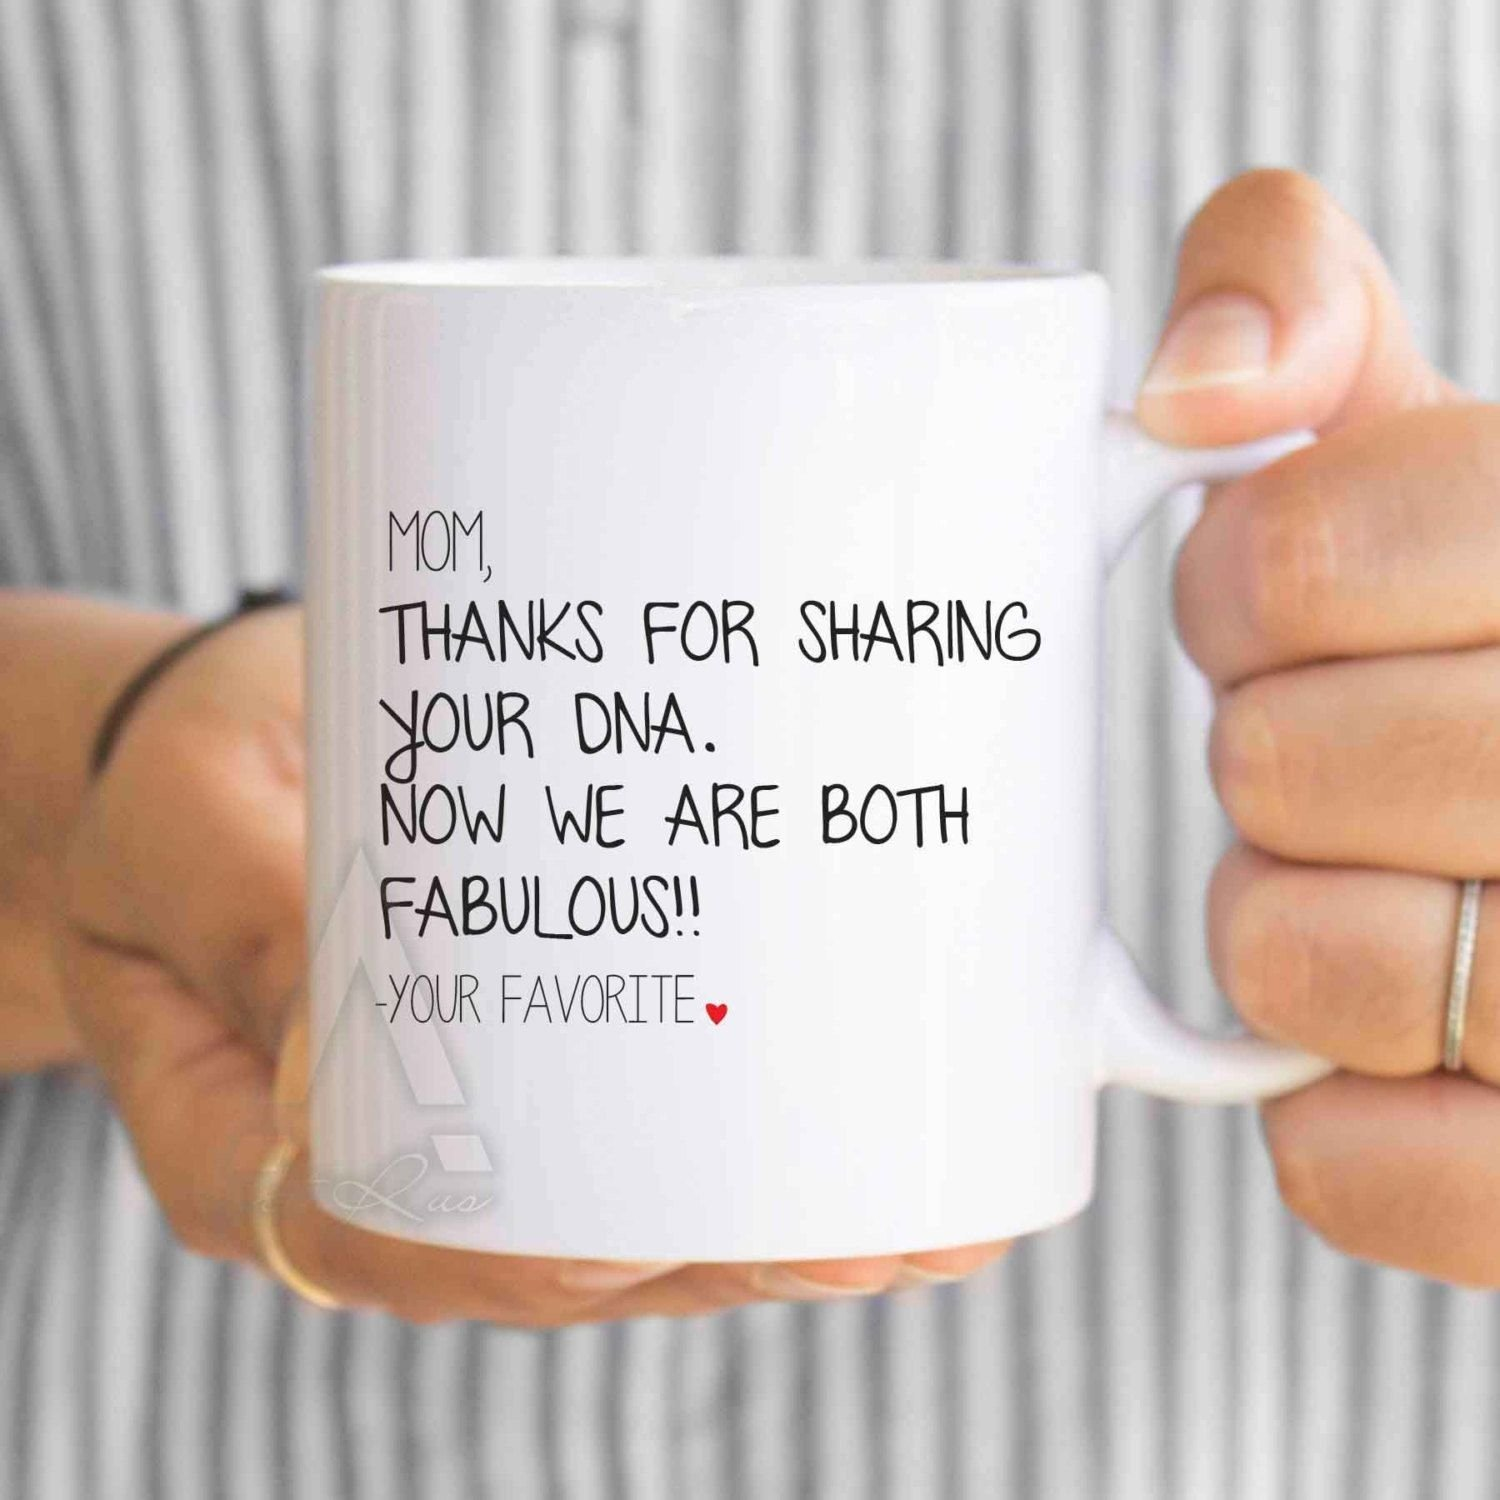 10 Elegant Ideas For Christmas Gifts For Mom mothers day from daughter funny coffee mug for mom mom thanks 2020